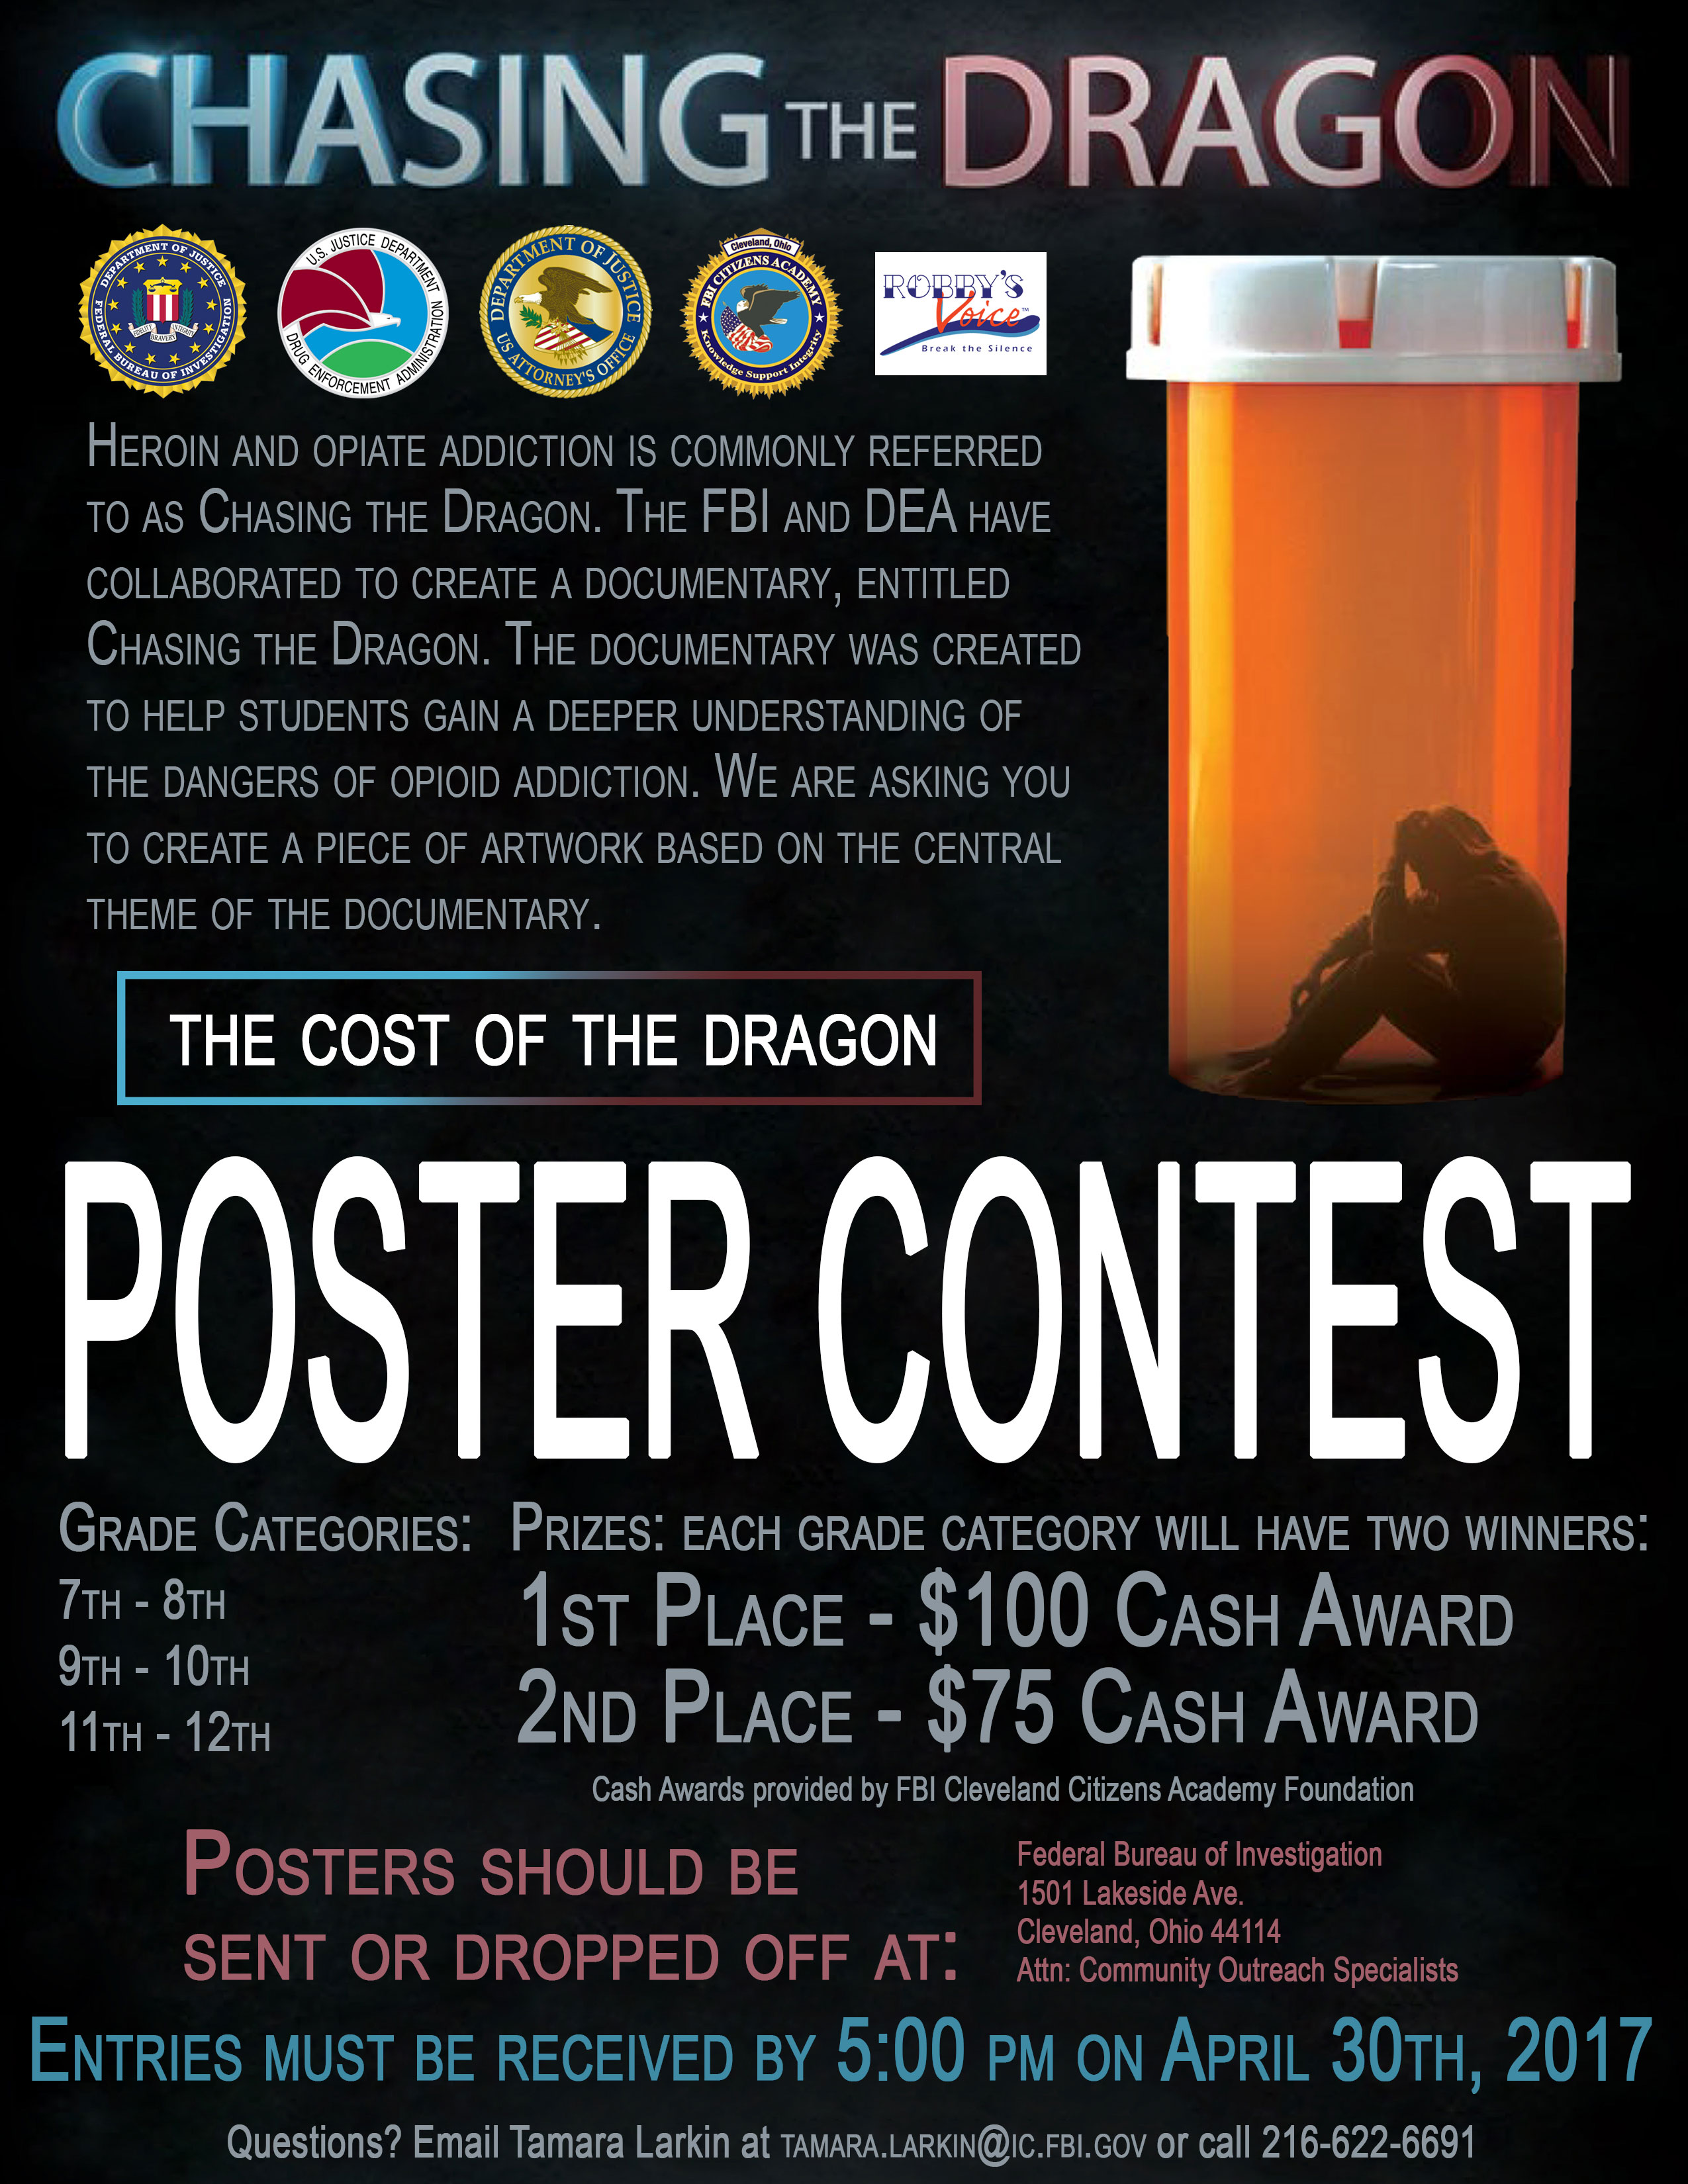 Wanted: 7th-12th Graders for Chasing the Dragon Poster Contest — FBI